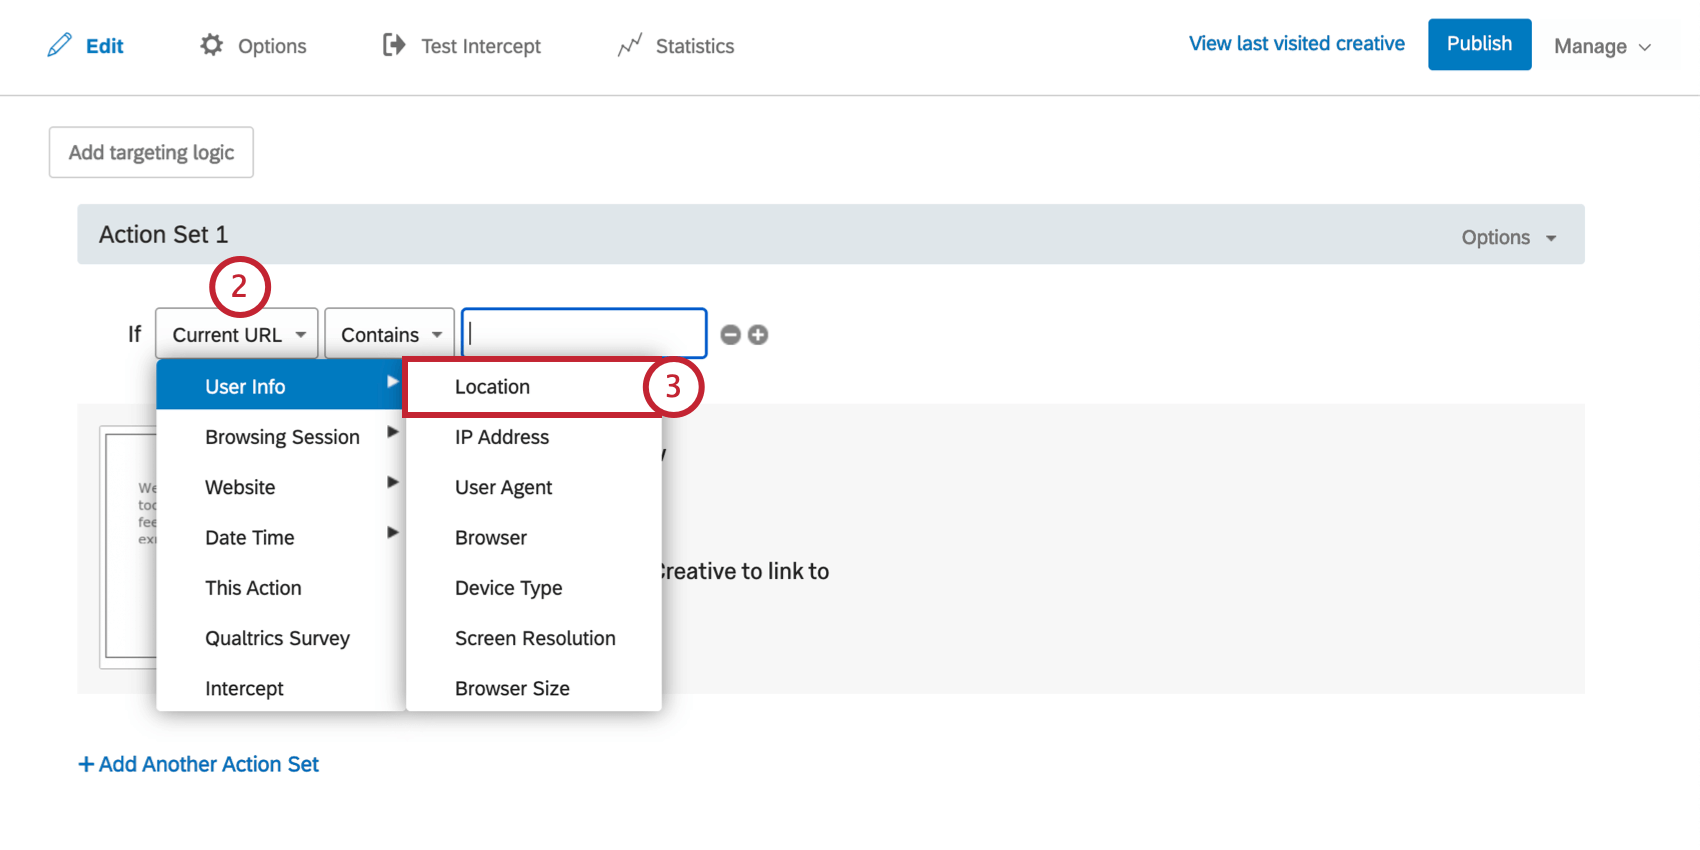 First dropdown is expanded. User Info is highlighted in the menu, with option IP Address indicated